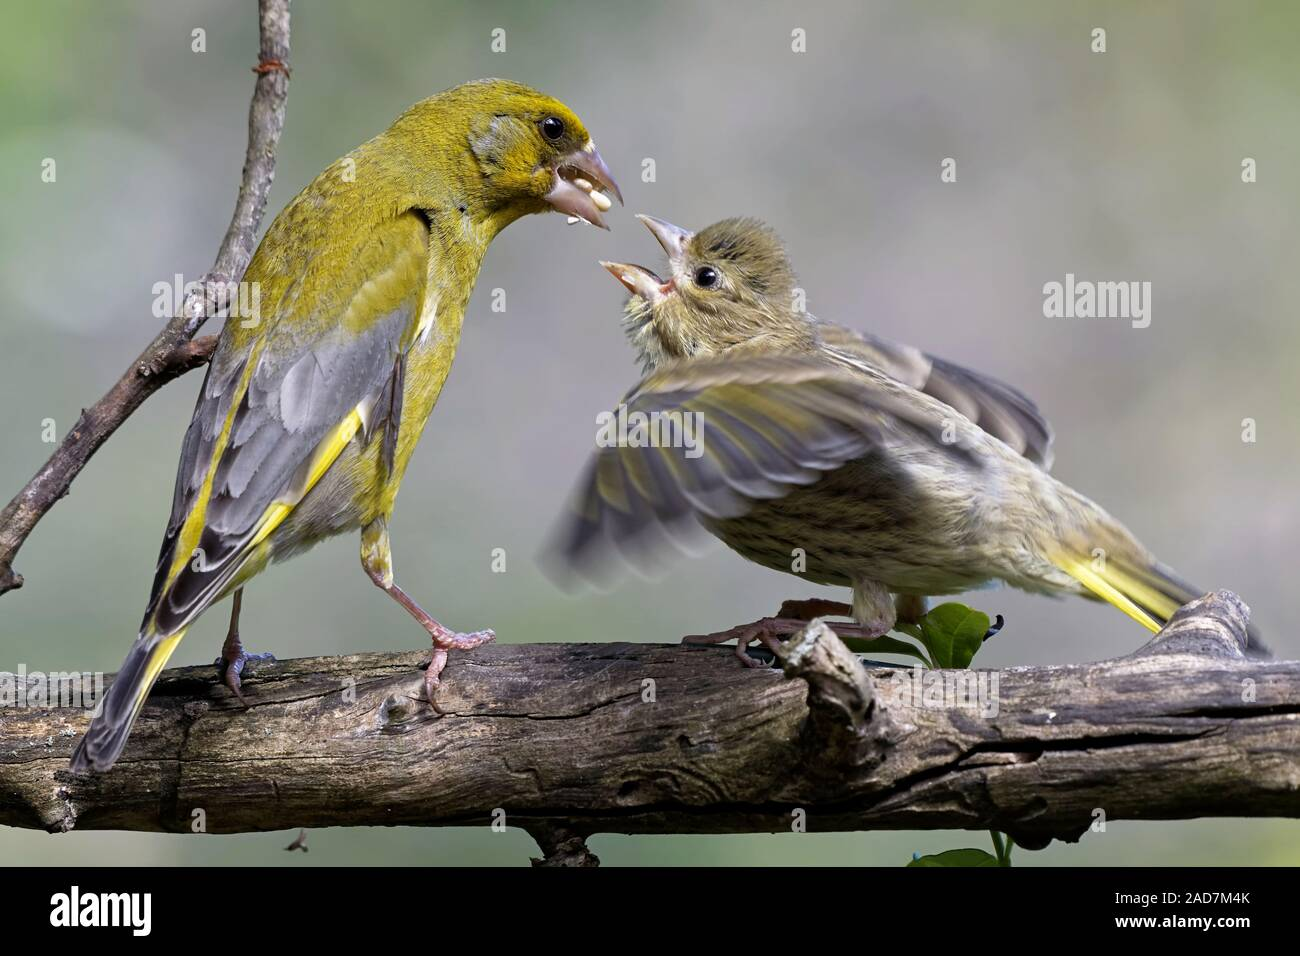 Greenfinch with branchling Stock Photo